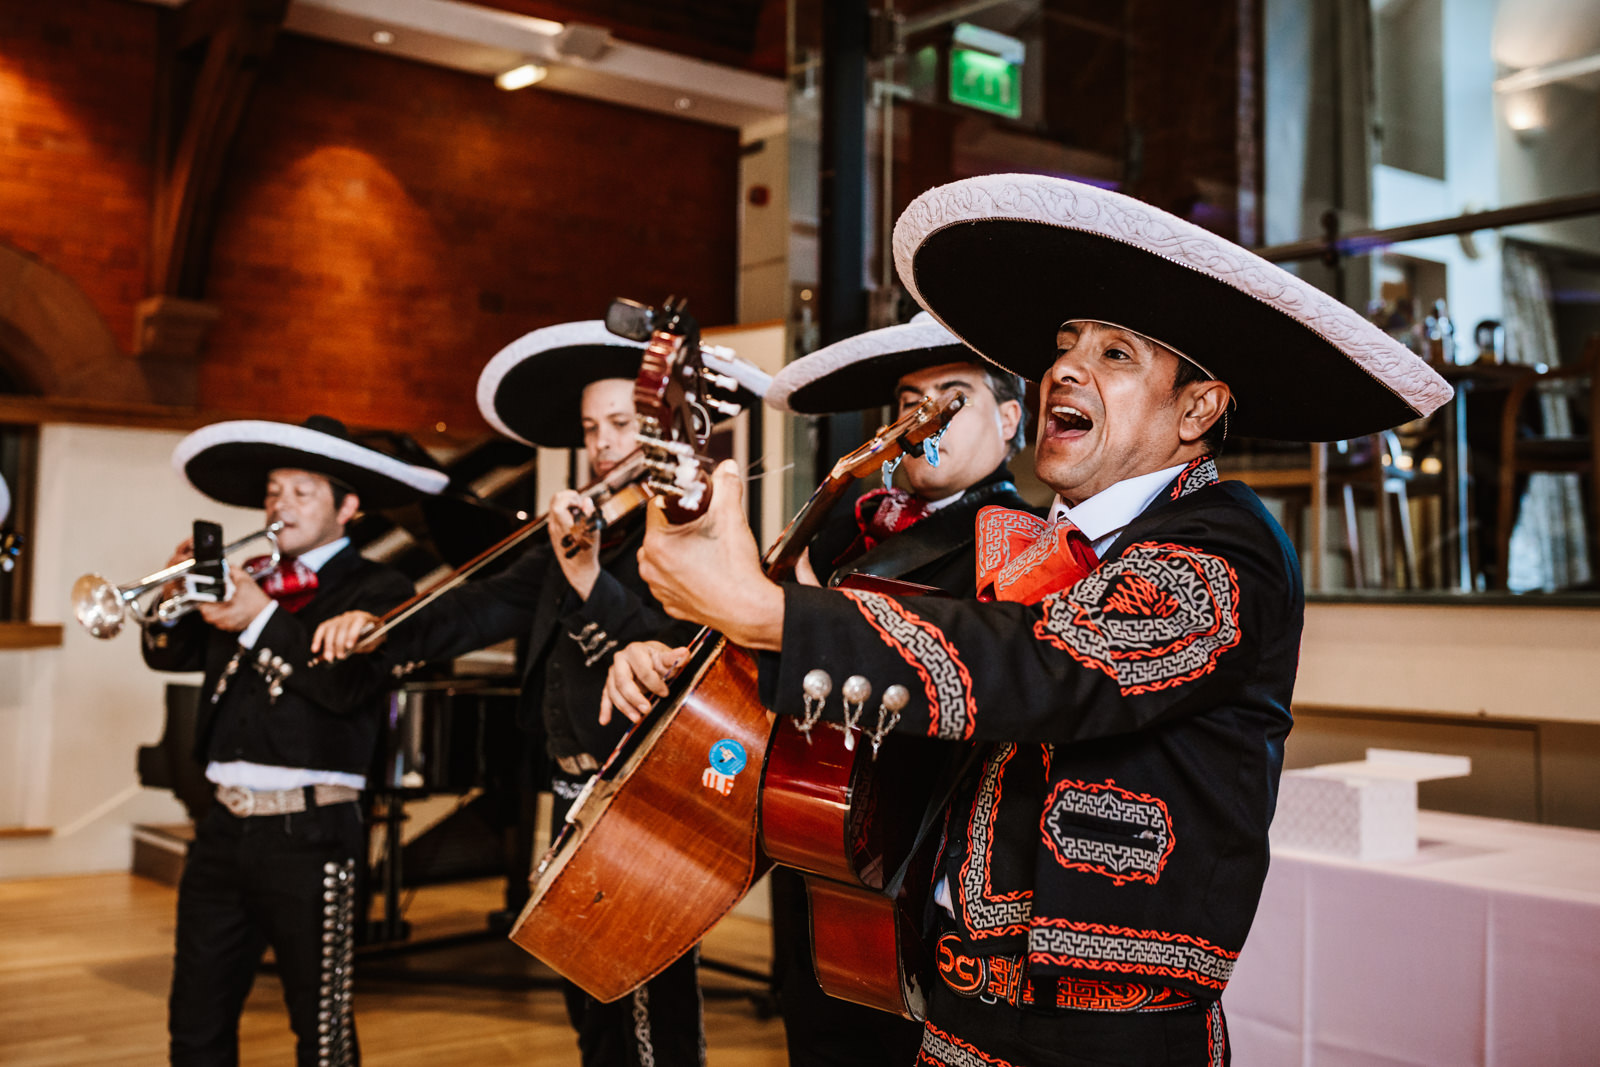 Mariachi band wedding